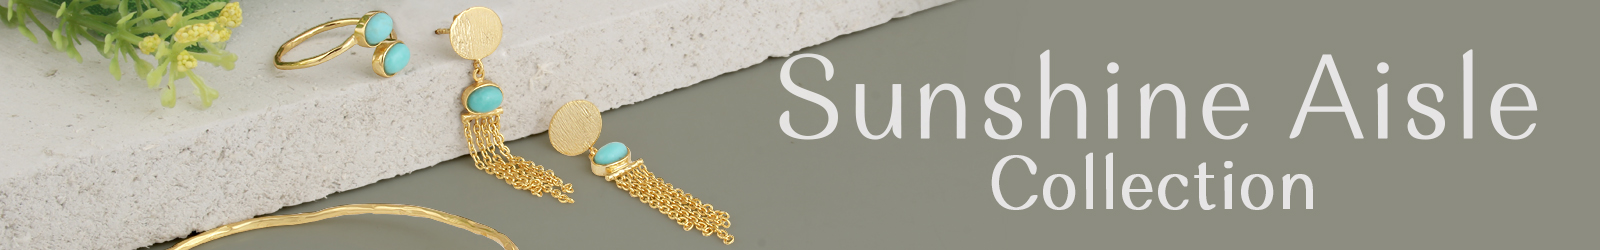 Online Wholesale Sunshine Aisle Silver Jewelry Manufacturer